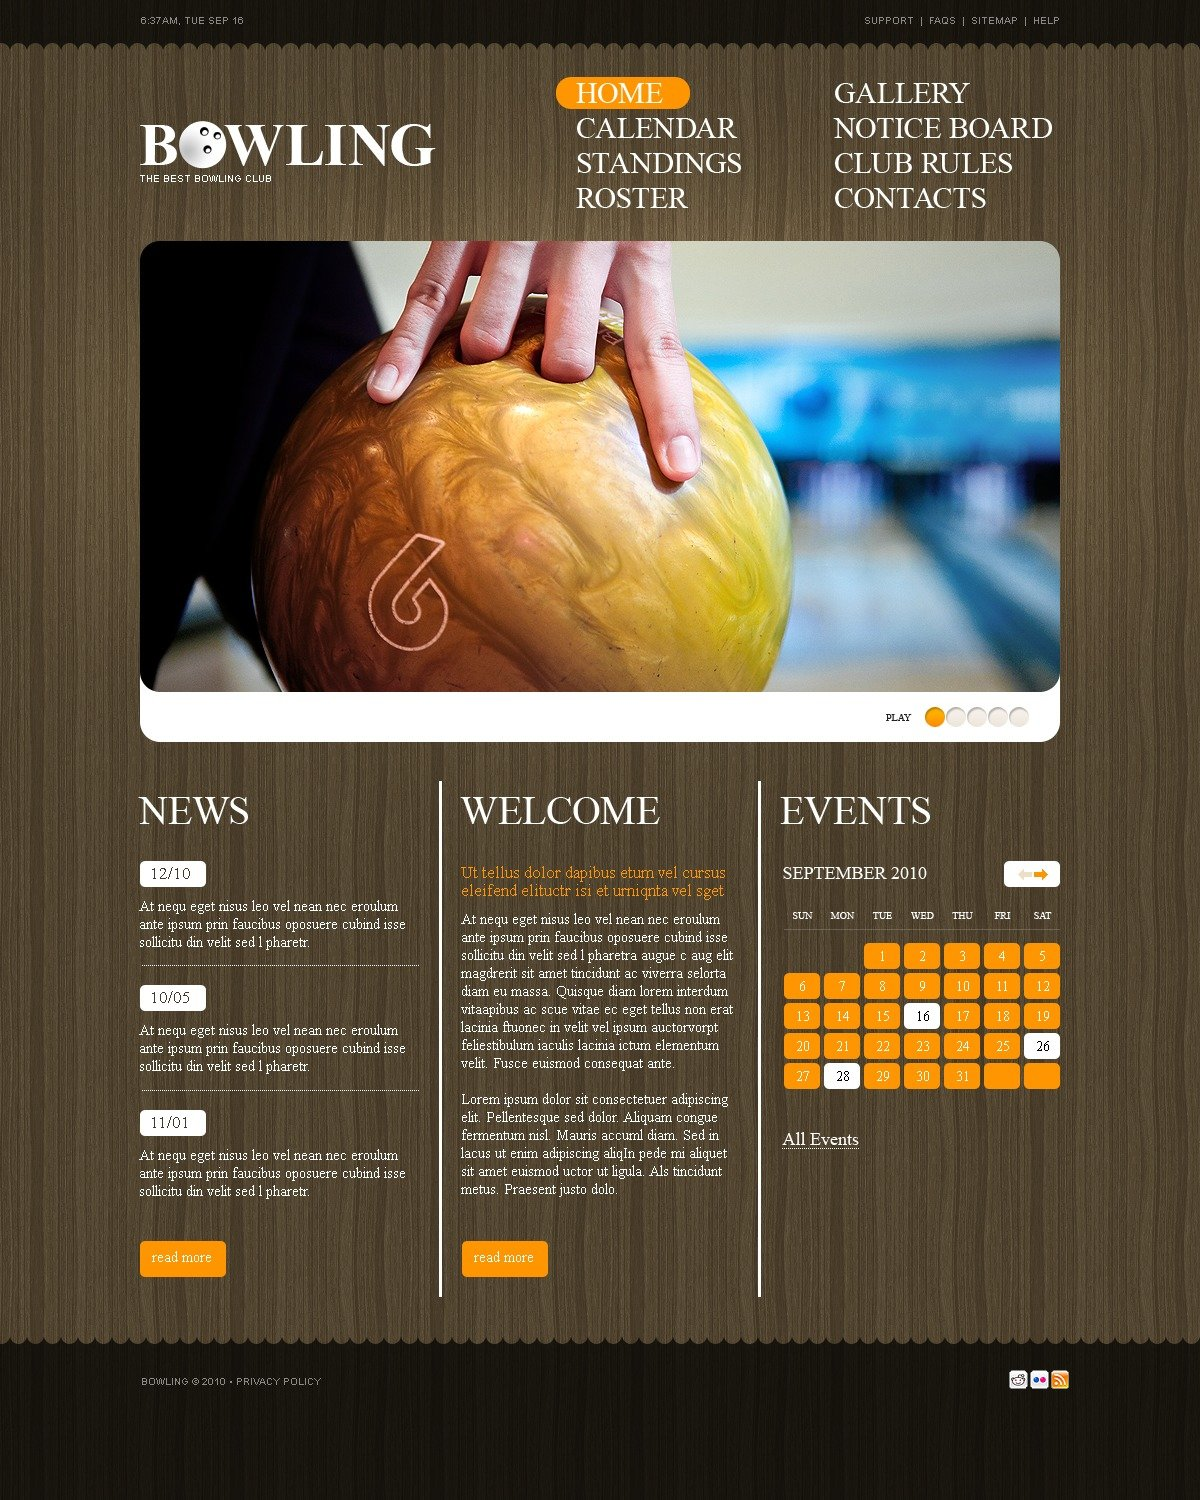 The Bowling Club PSD Design 54418, one of the best PSD templates of its kind (sport, wide, jquery), also known as bowling club PSD template, tournament PSD template, player PSD template, skittles PSD template, ninepins PSD template, game PSD template, sport PSD template, championship PSD template, ball and related with bowling club, tournament, player, skittles, ninepins, game, sport, championship, ball, etc.